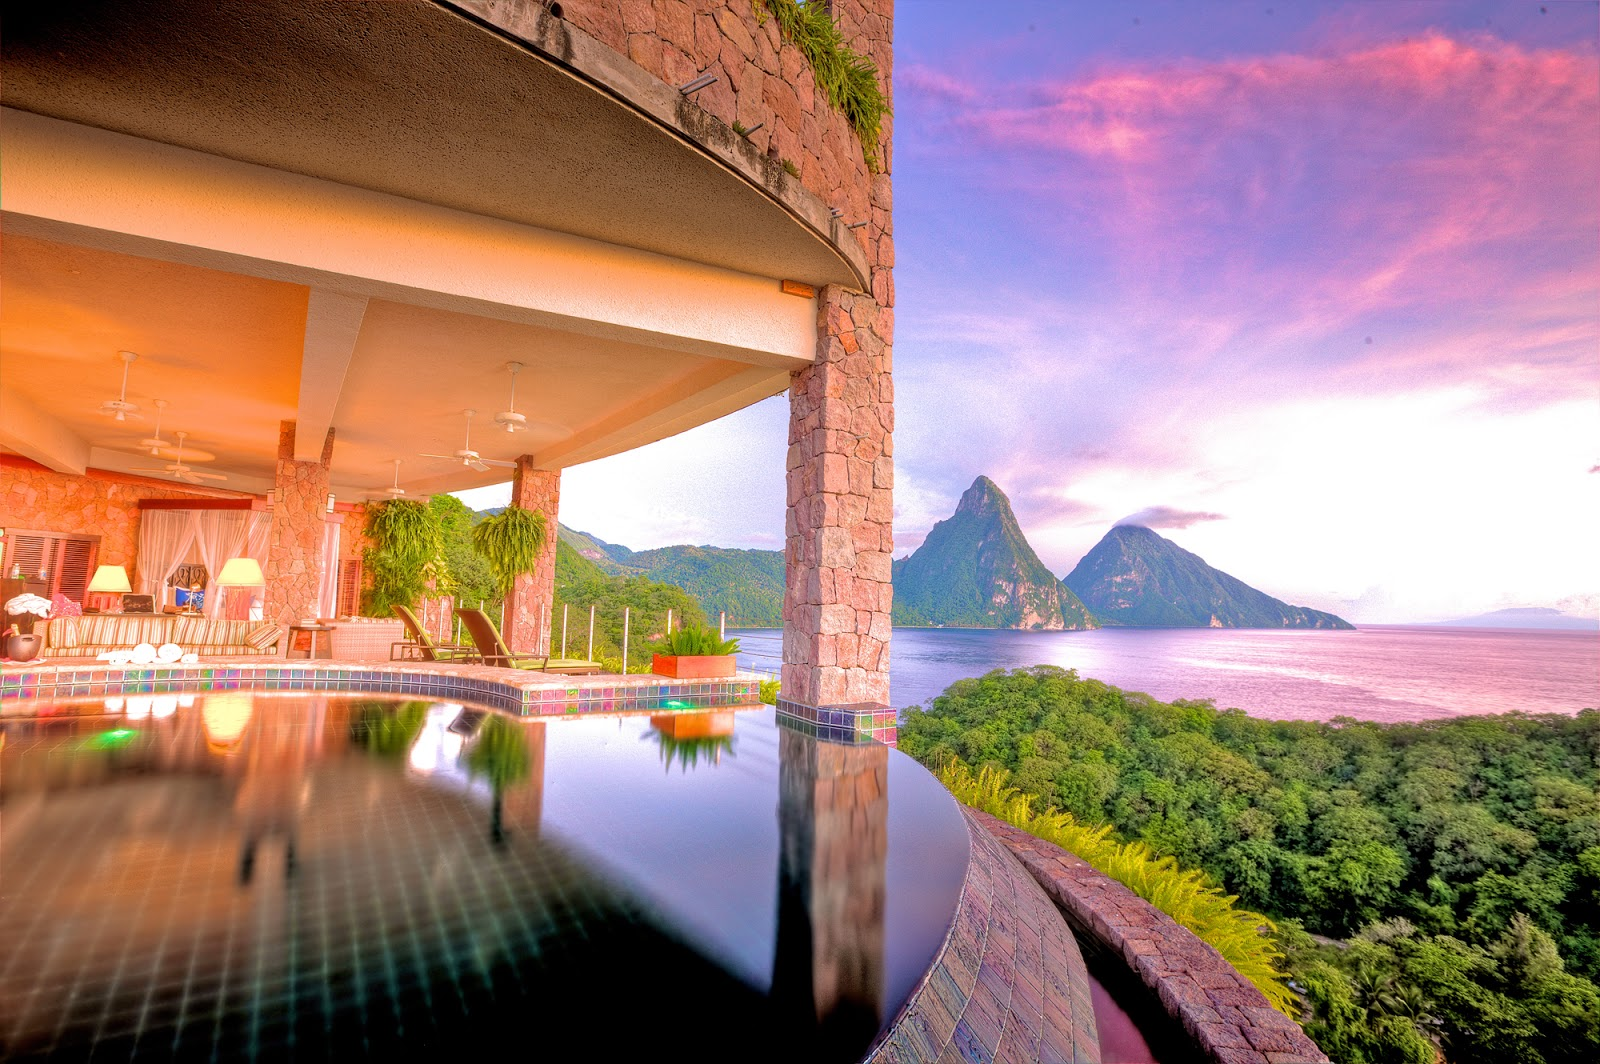 Discover YOUR WORLD: Destination: Saint Lucia - paradise hidden in the Caribbean - 3 exclusive resorts in the Pitons